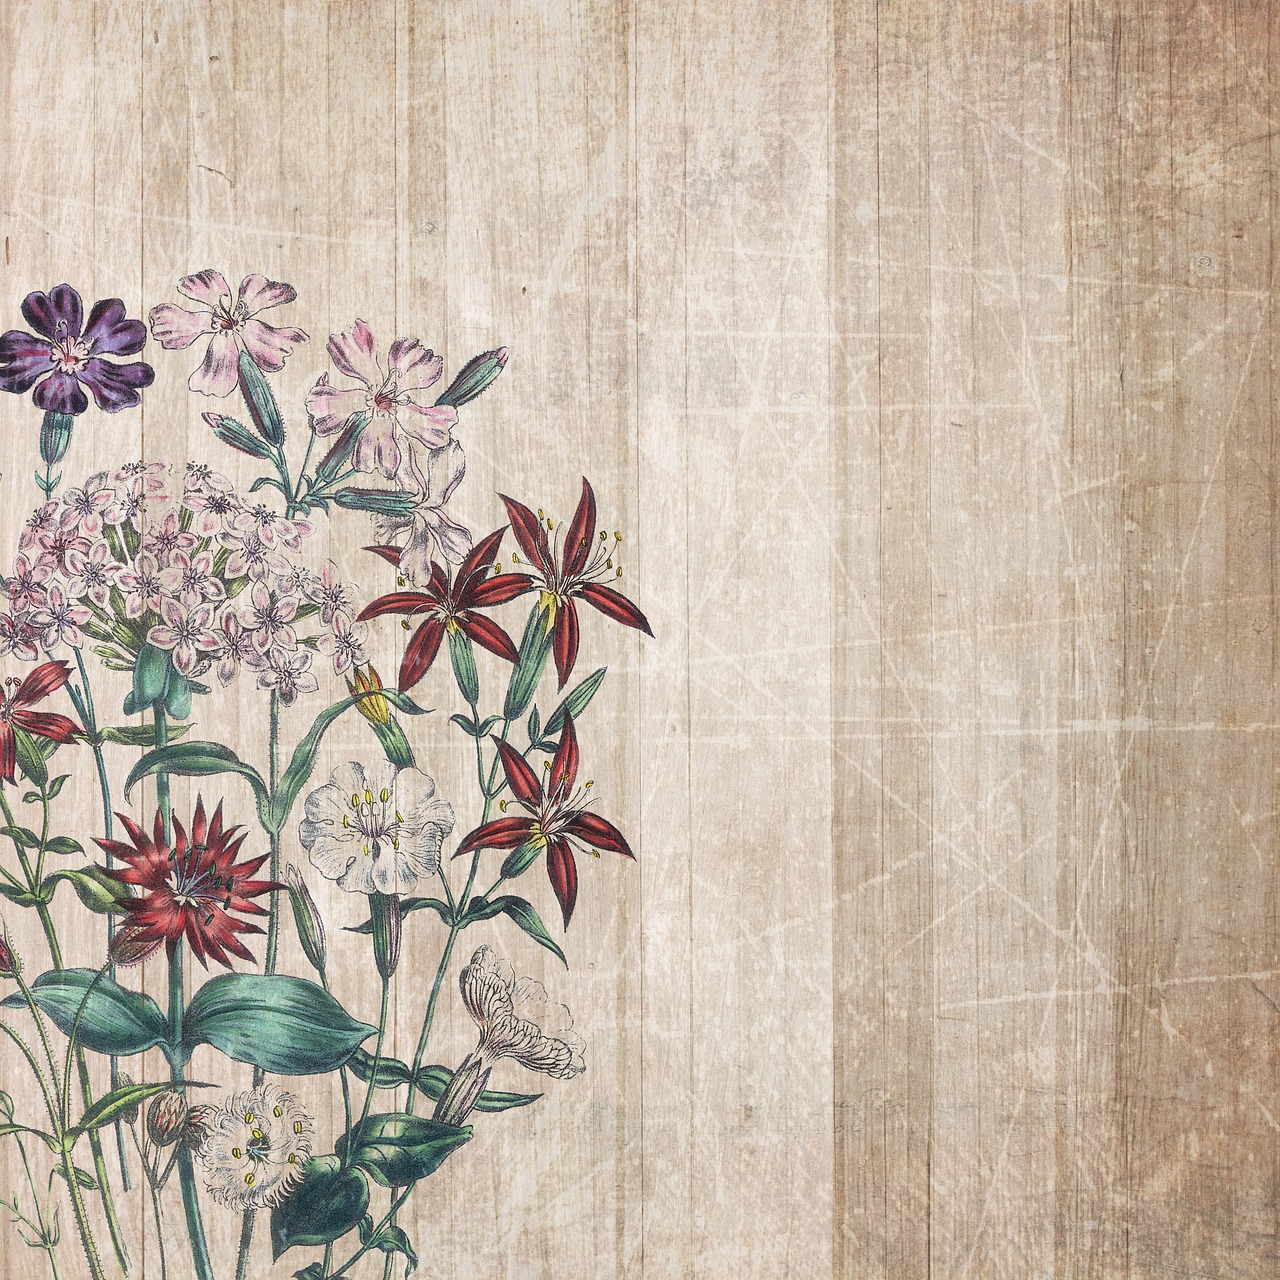 background scrapbooking paper free photo